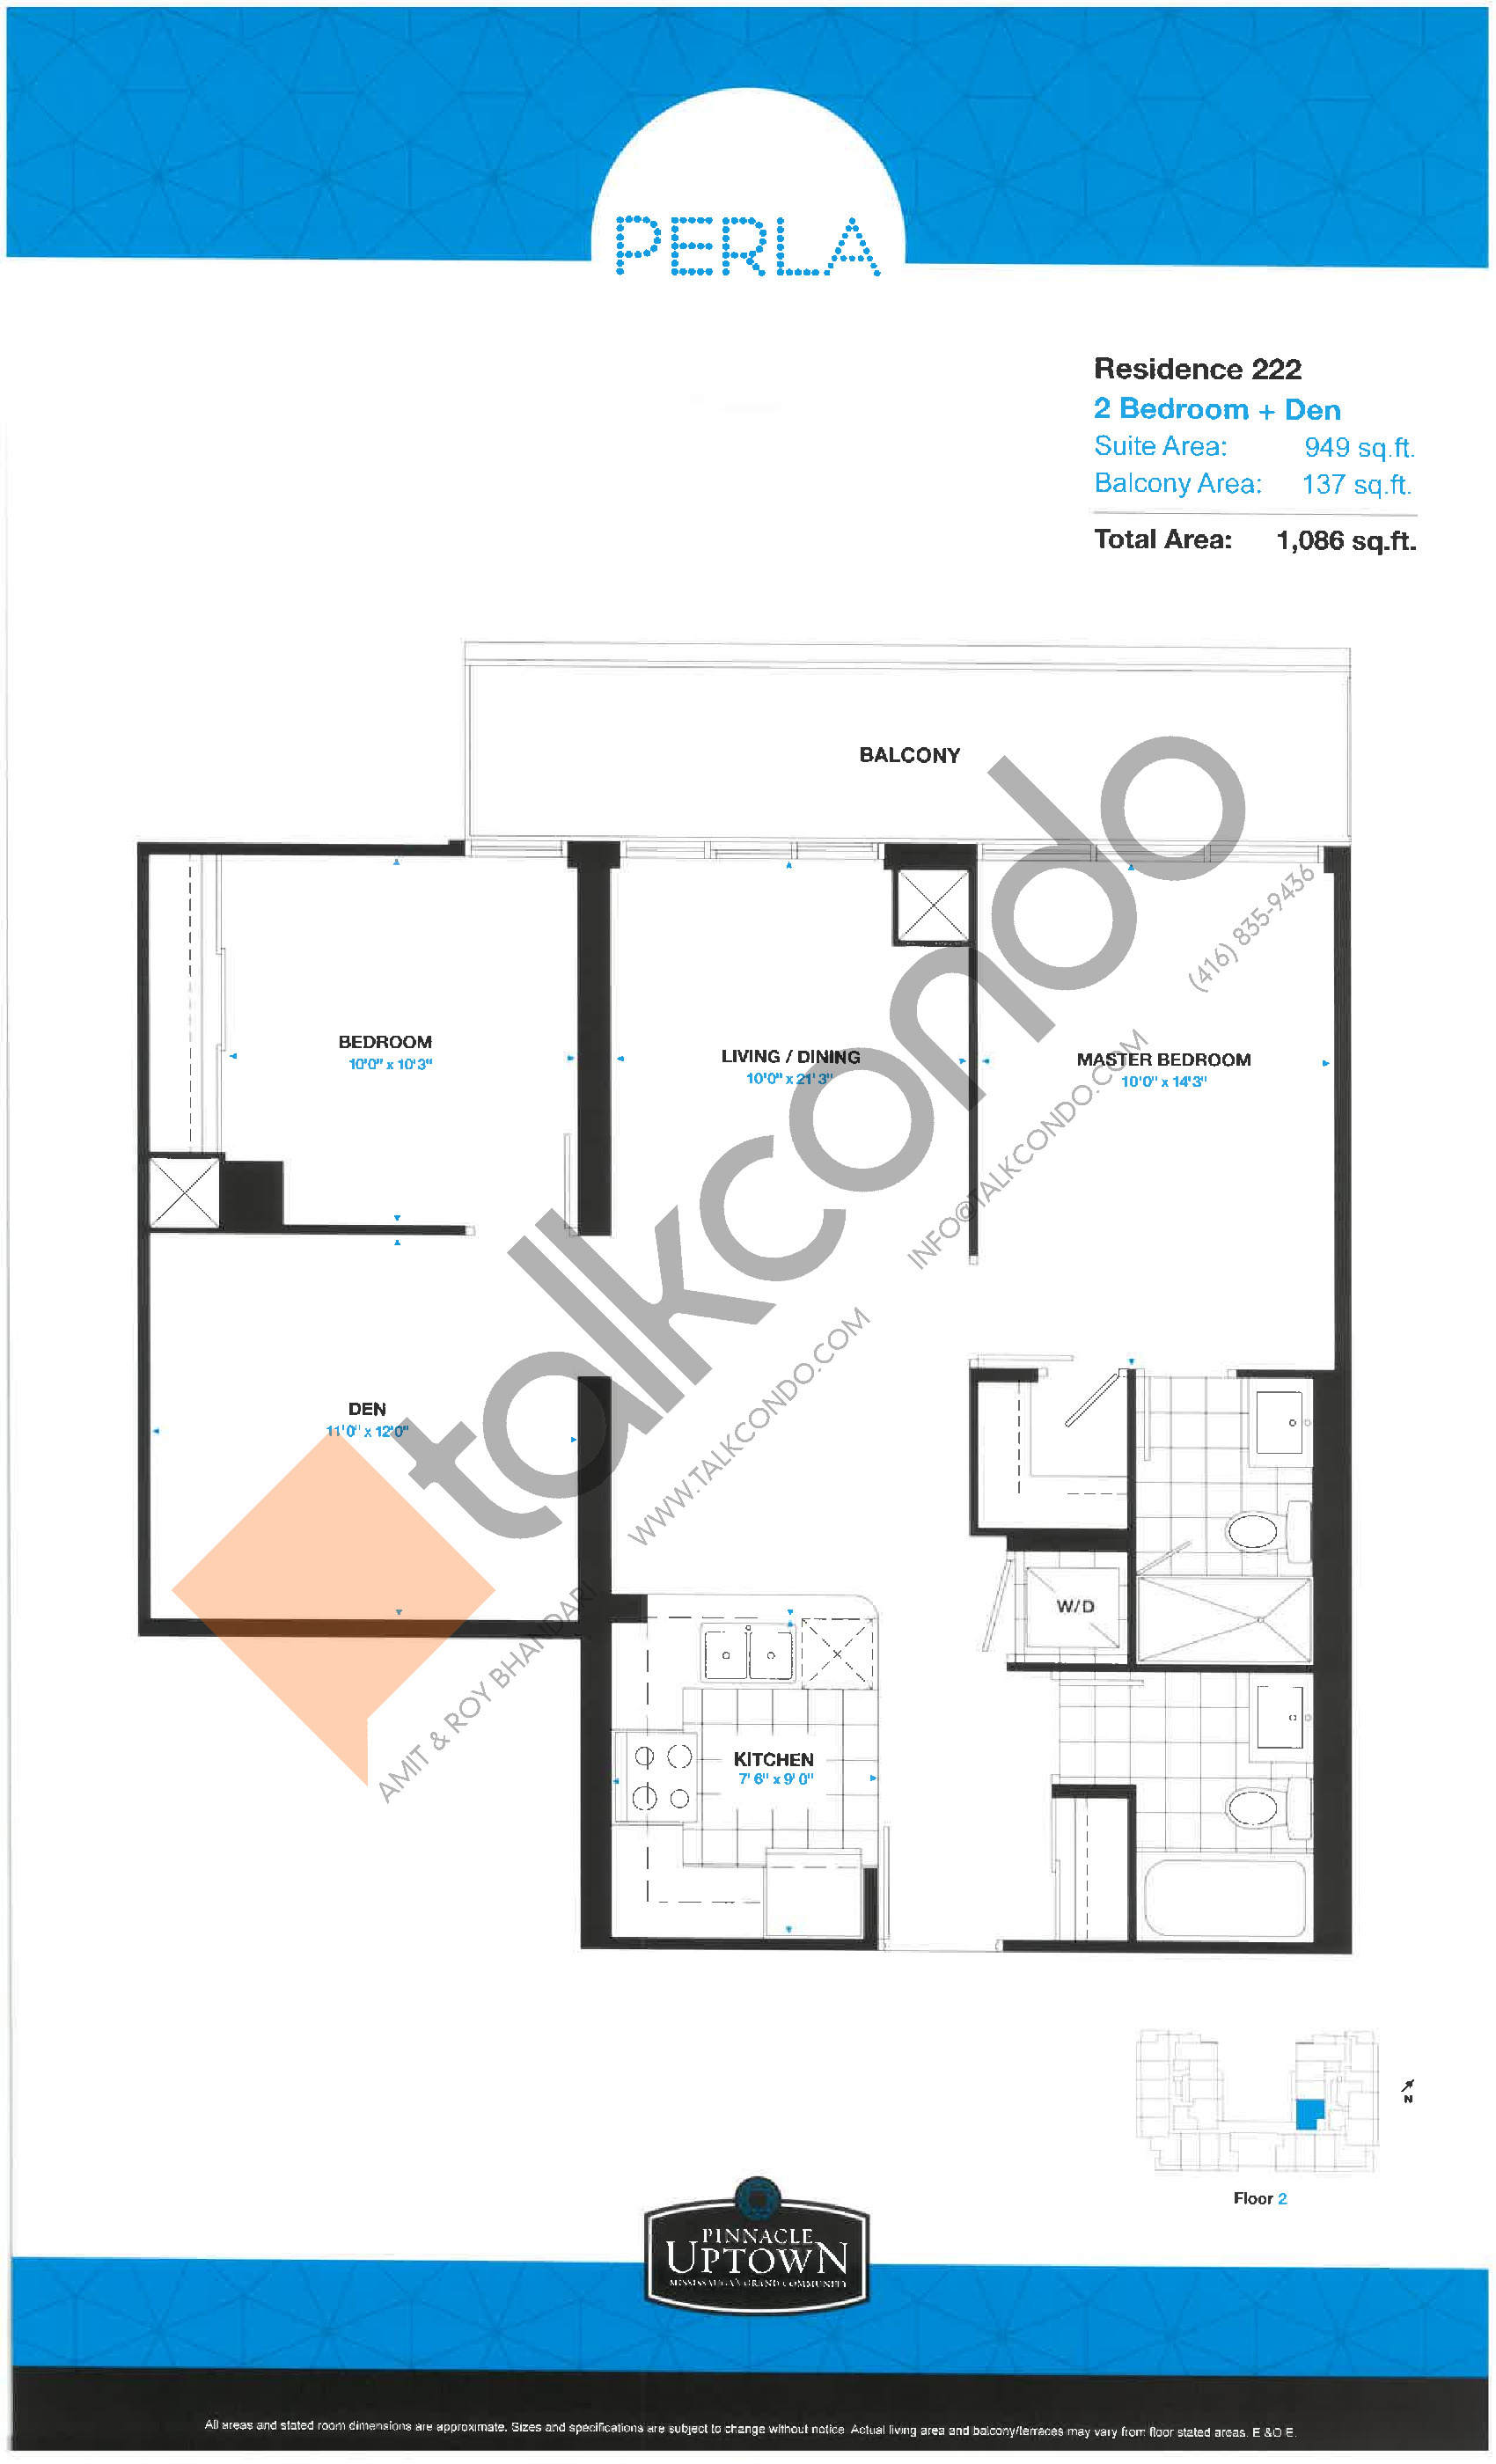 Residence 222 - East Tower Floor Plan at Perla Towers Condos - 949 sq.ft